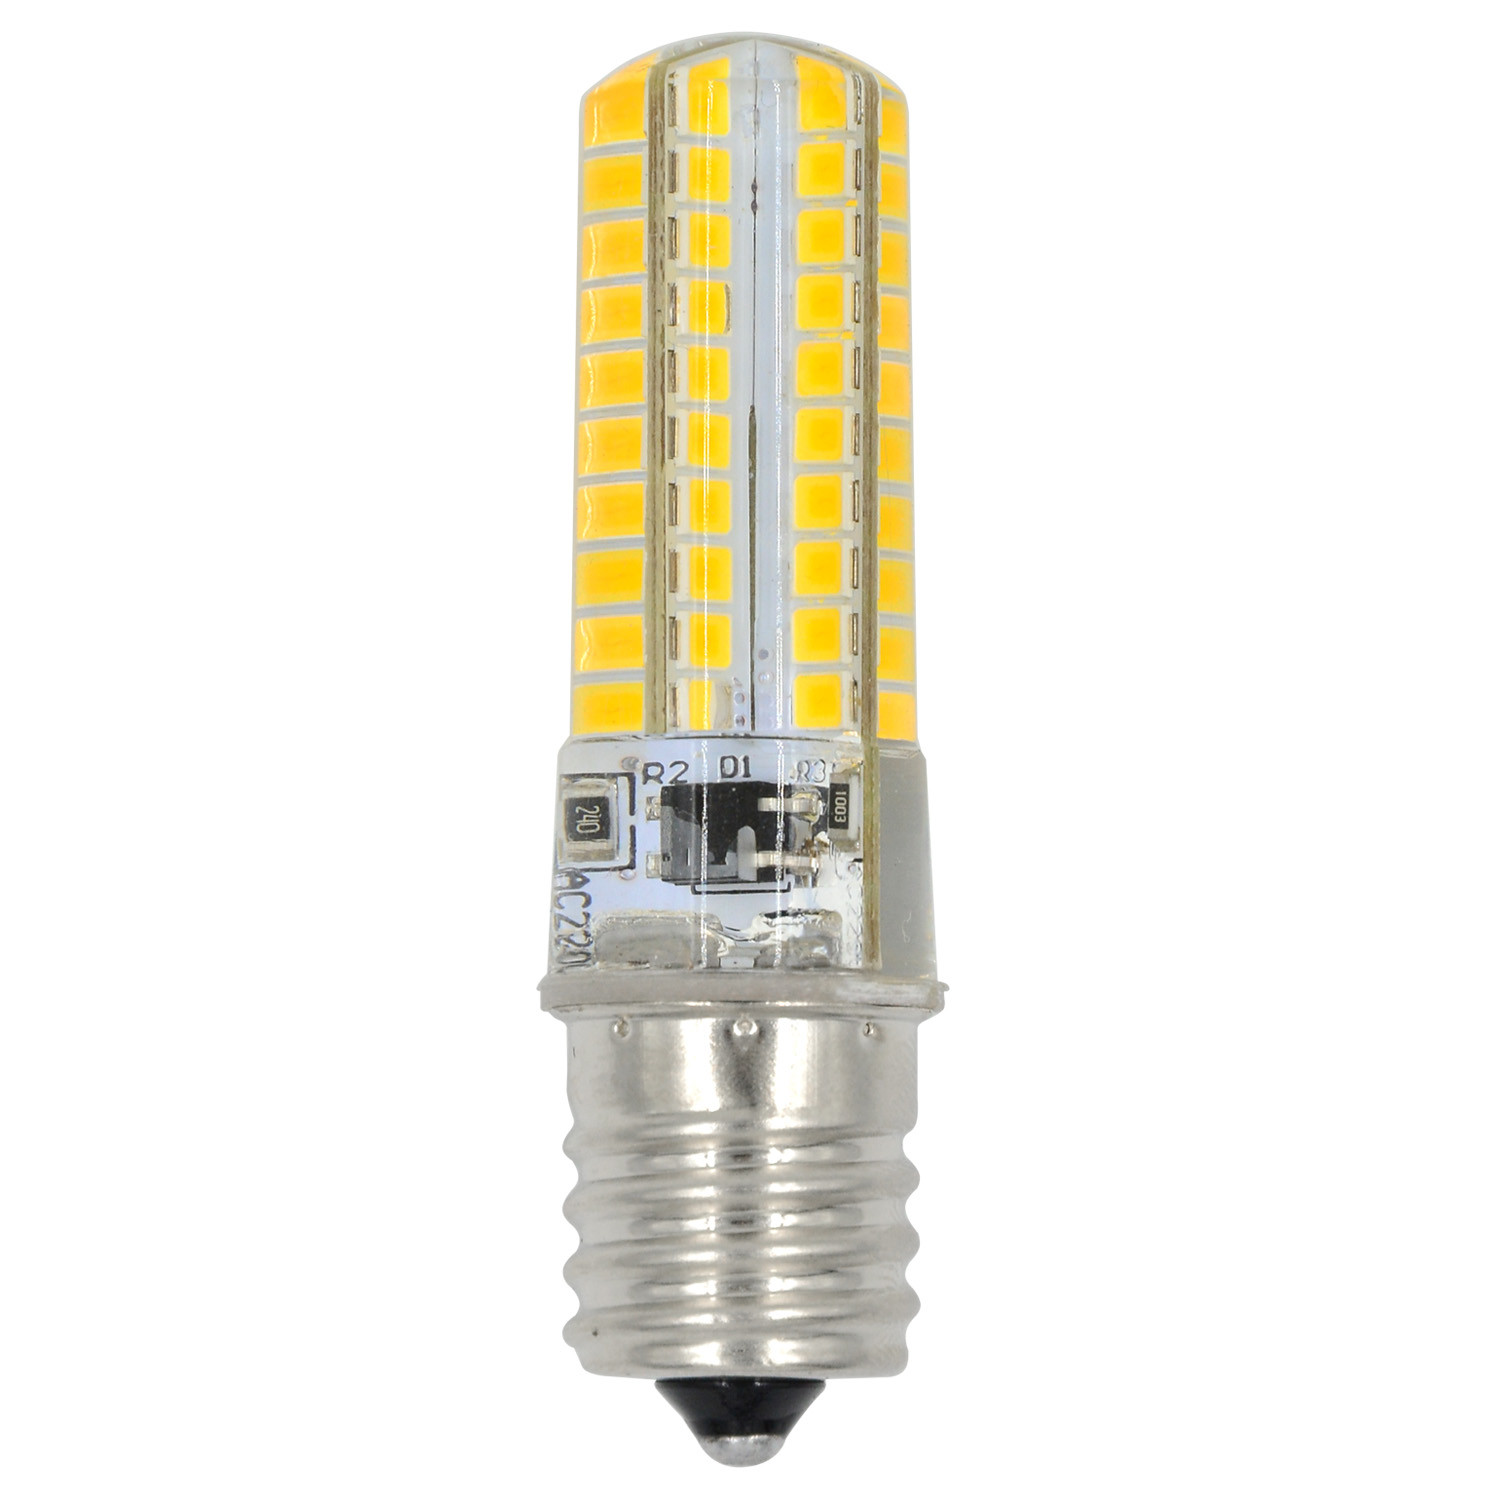 MENGS® E17 7W LED Light 80x 2835 SMD 3-level Brightness LED Bulb Lamp In Warm White Energy-Saving Light